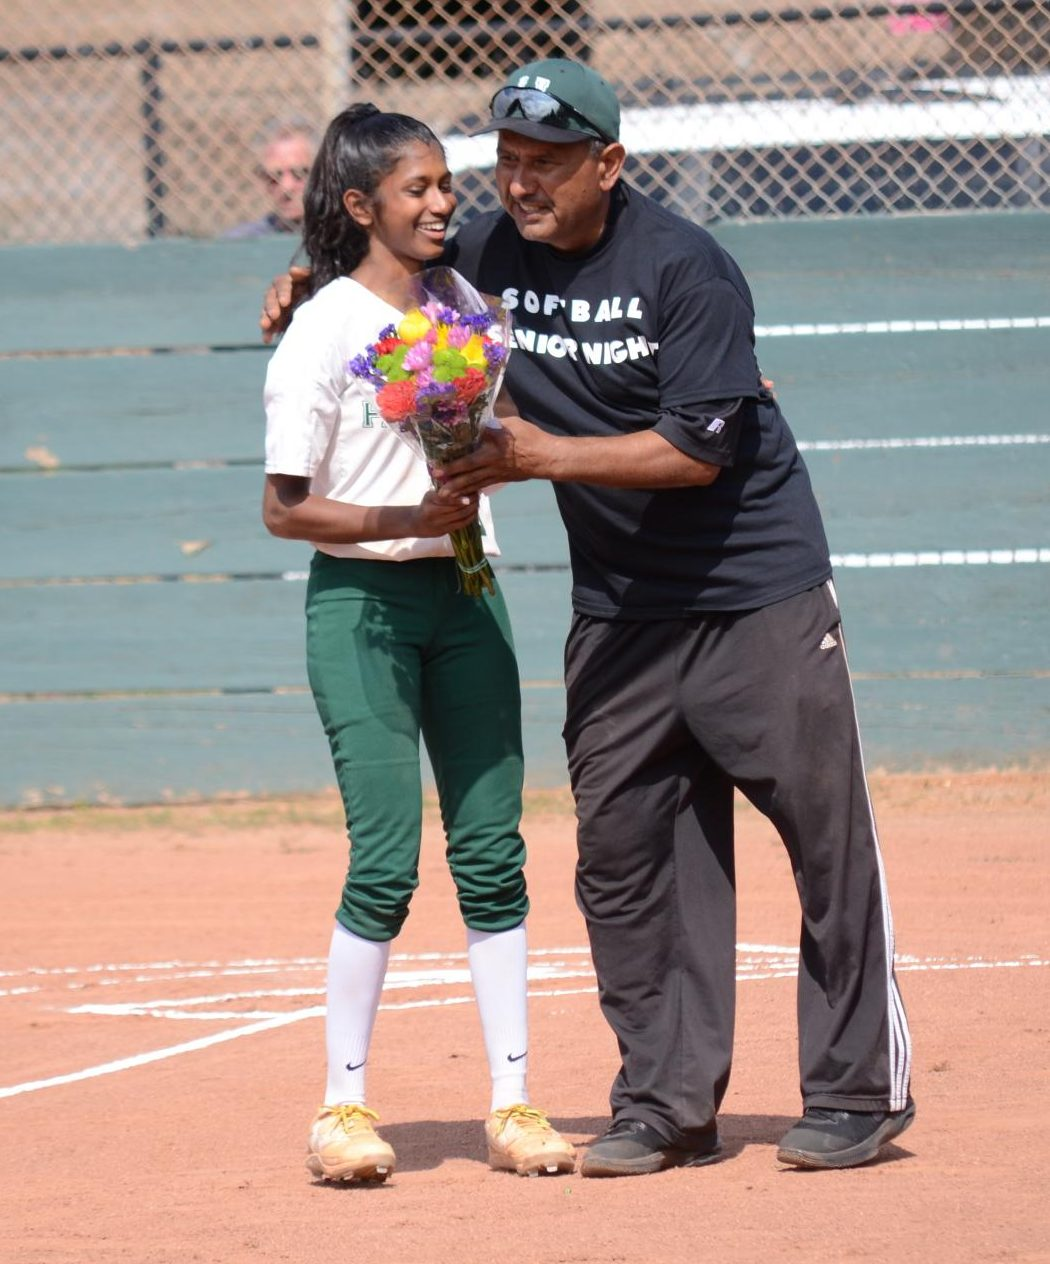 Anika Rajamani (12) receives a bouquet from coach Raul Rios ahead of the game. The girls won the game 23-22.